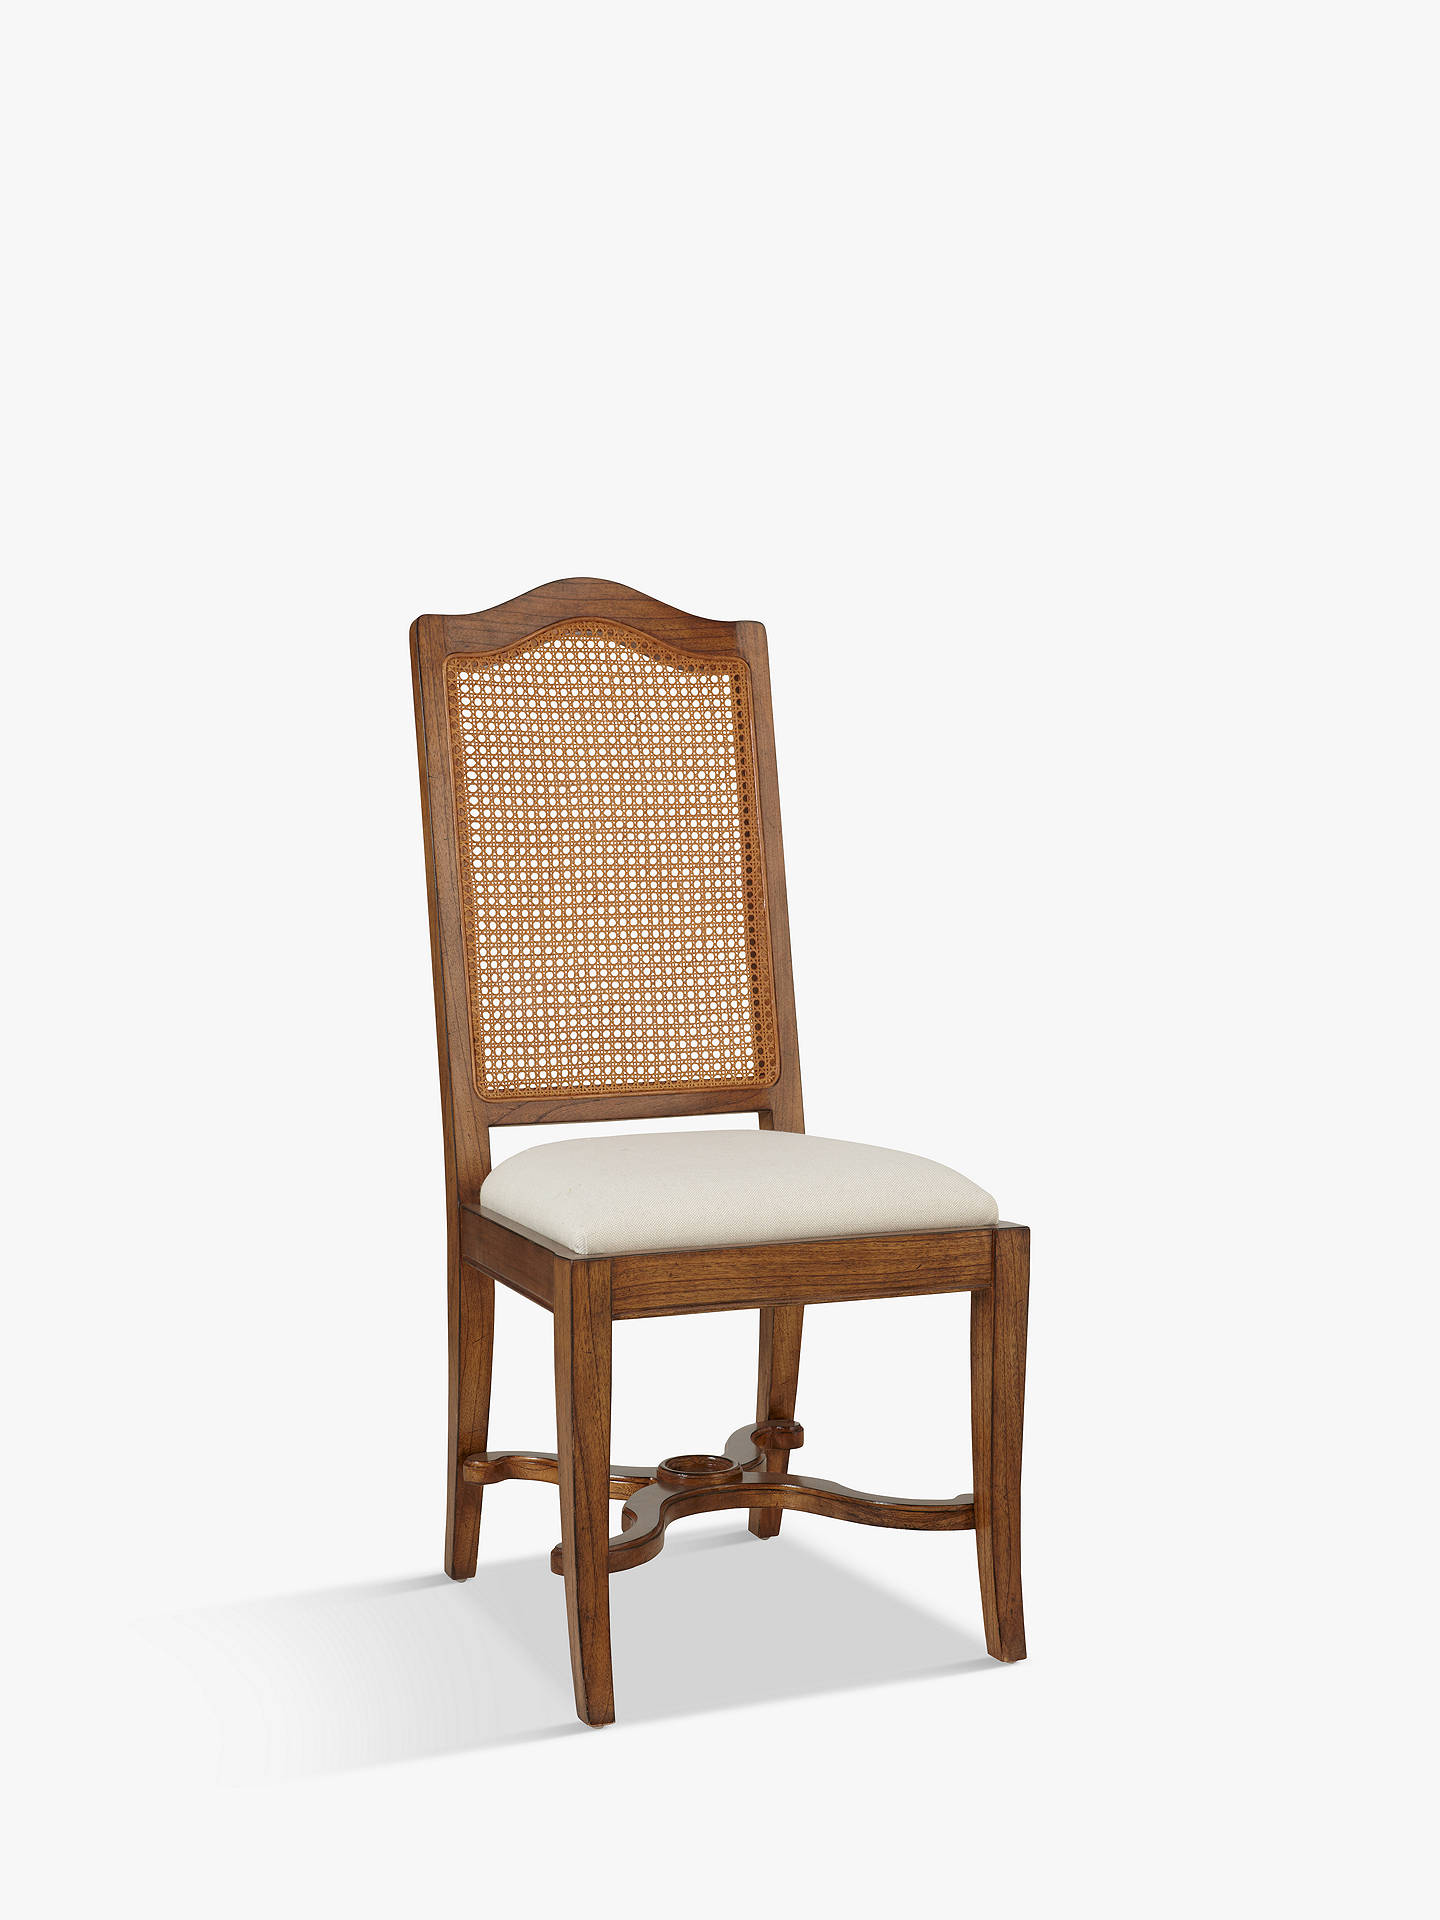 Buy John Lewis & Partners Hemingway Cane Back Dining Chair Online at johnlewis.com